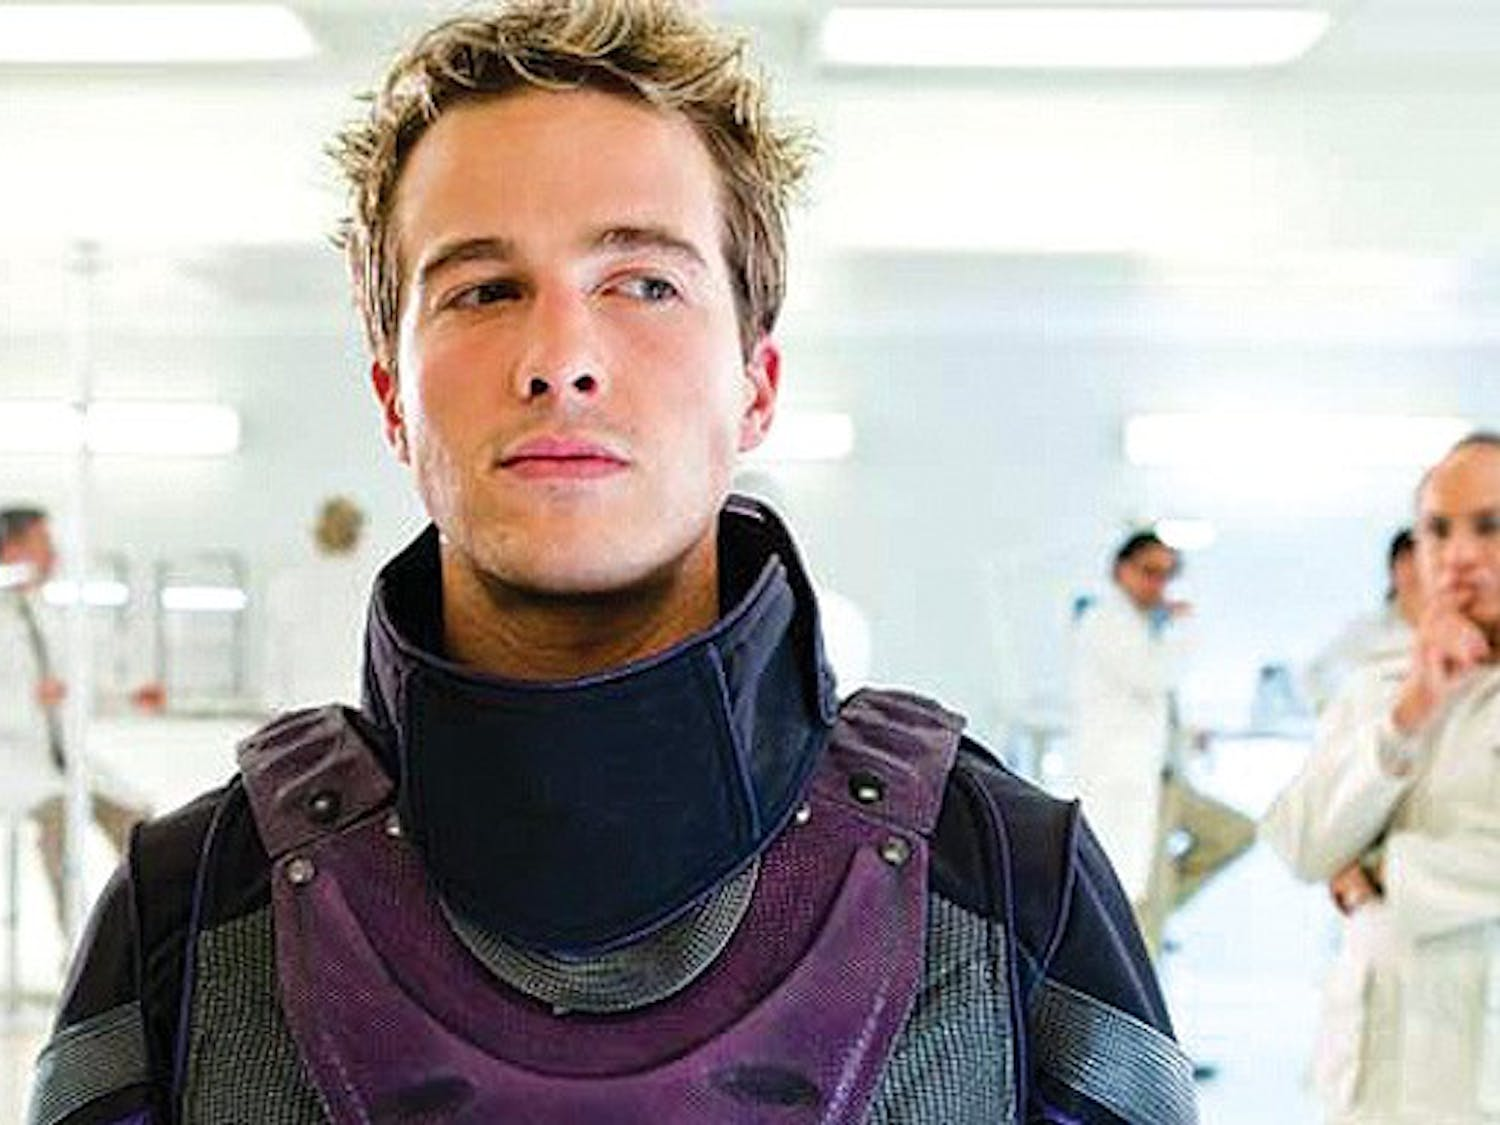 Ryan Carnes stars in The Phantom, a four-hour movie event on the SyFy channel based around a superhero first created in 1936.  Depending on viewership, The Phantom could be poised to become an ongoing series.